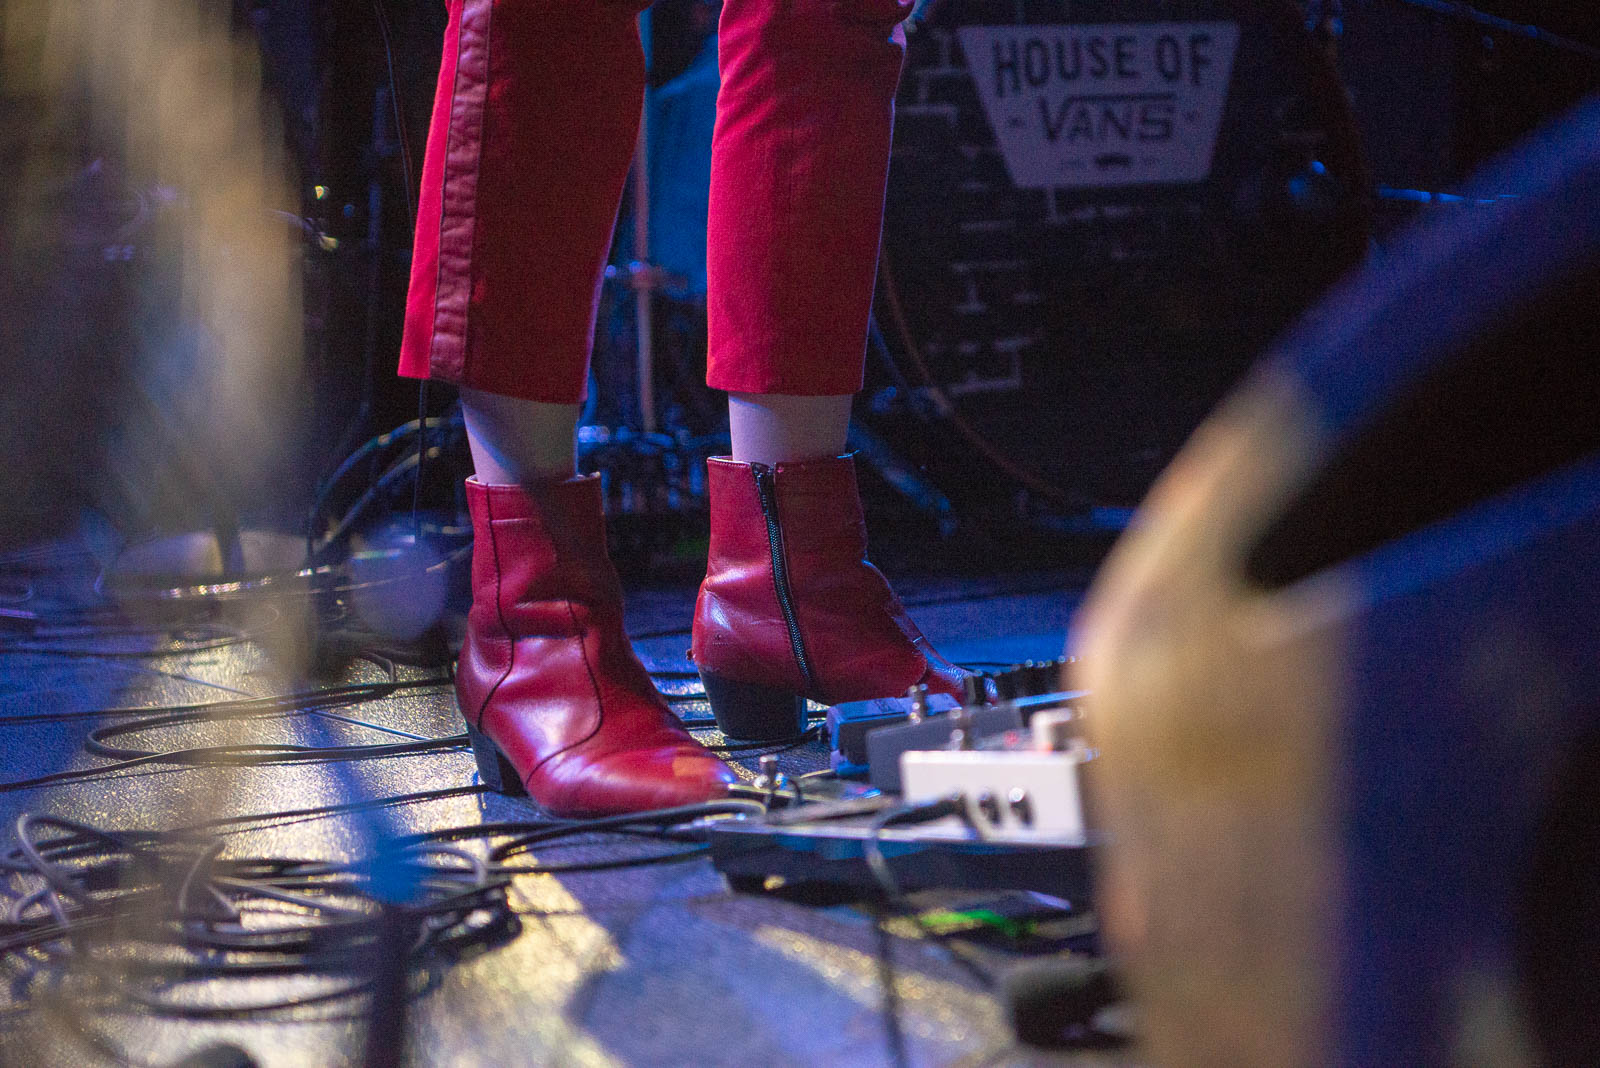 Circuit Des Yeux at House of Vans